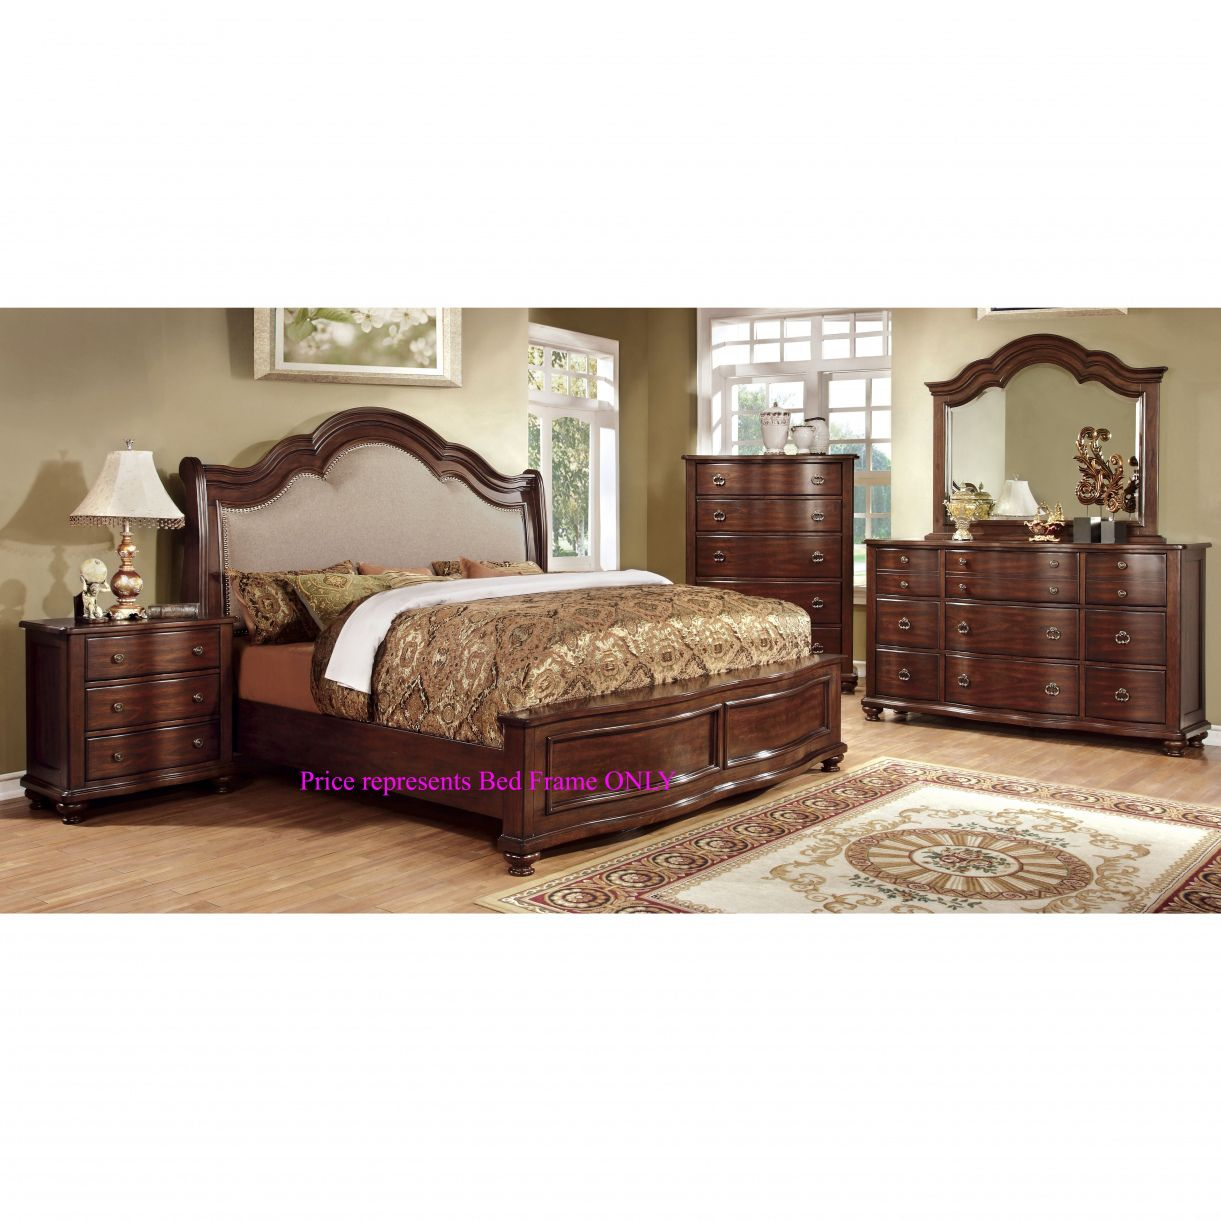 Designed to bring sophistication to any bedroom this bedroom set offers both style and comfort the arching headboard features an elegant molding frame